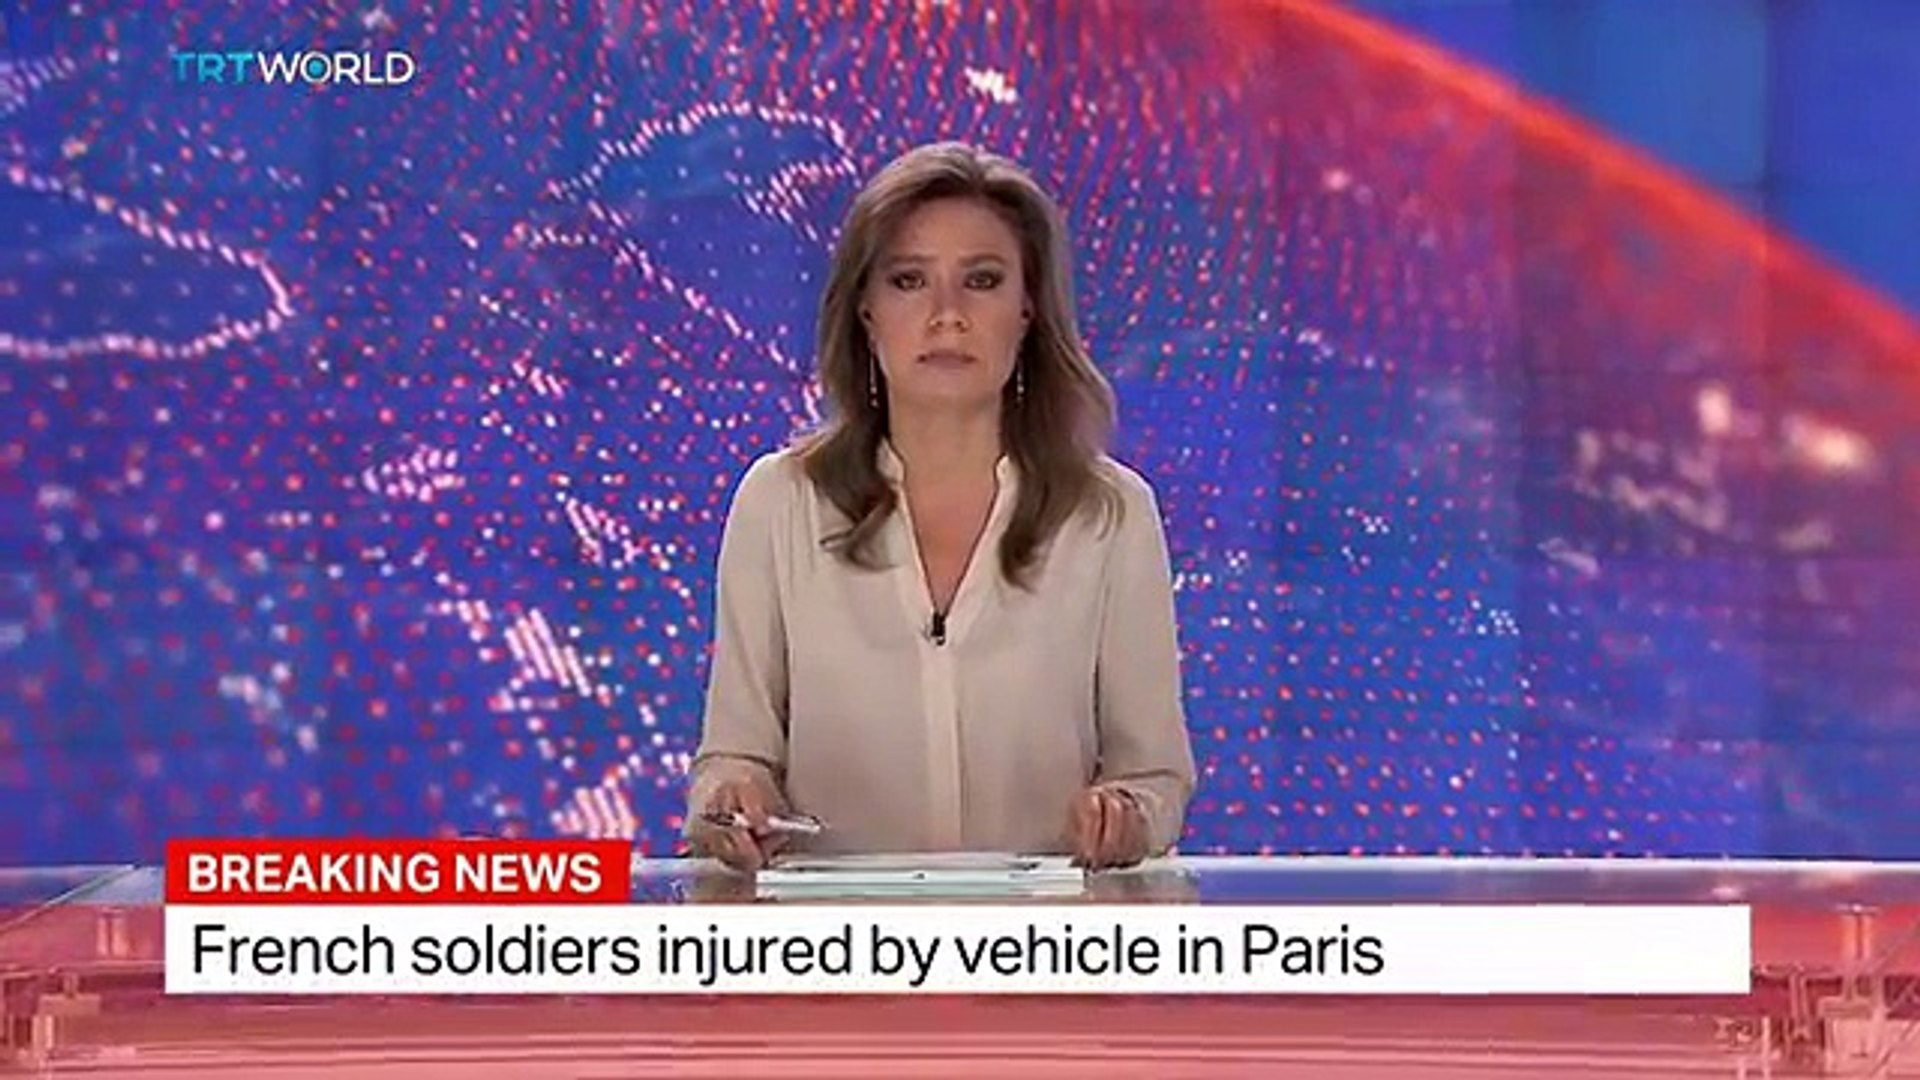 Breaking News French soldiers injured by vehicle in Paris